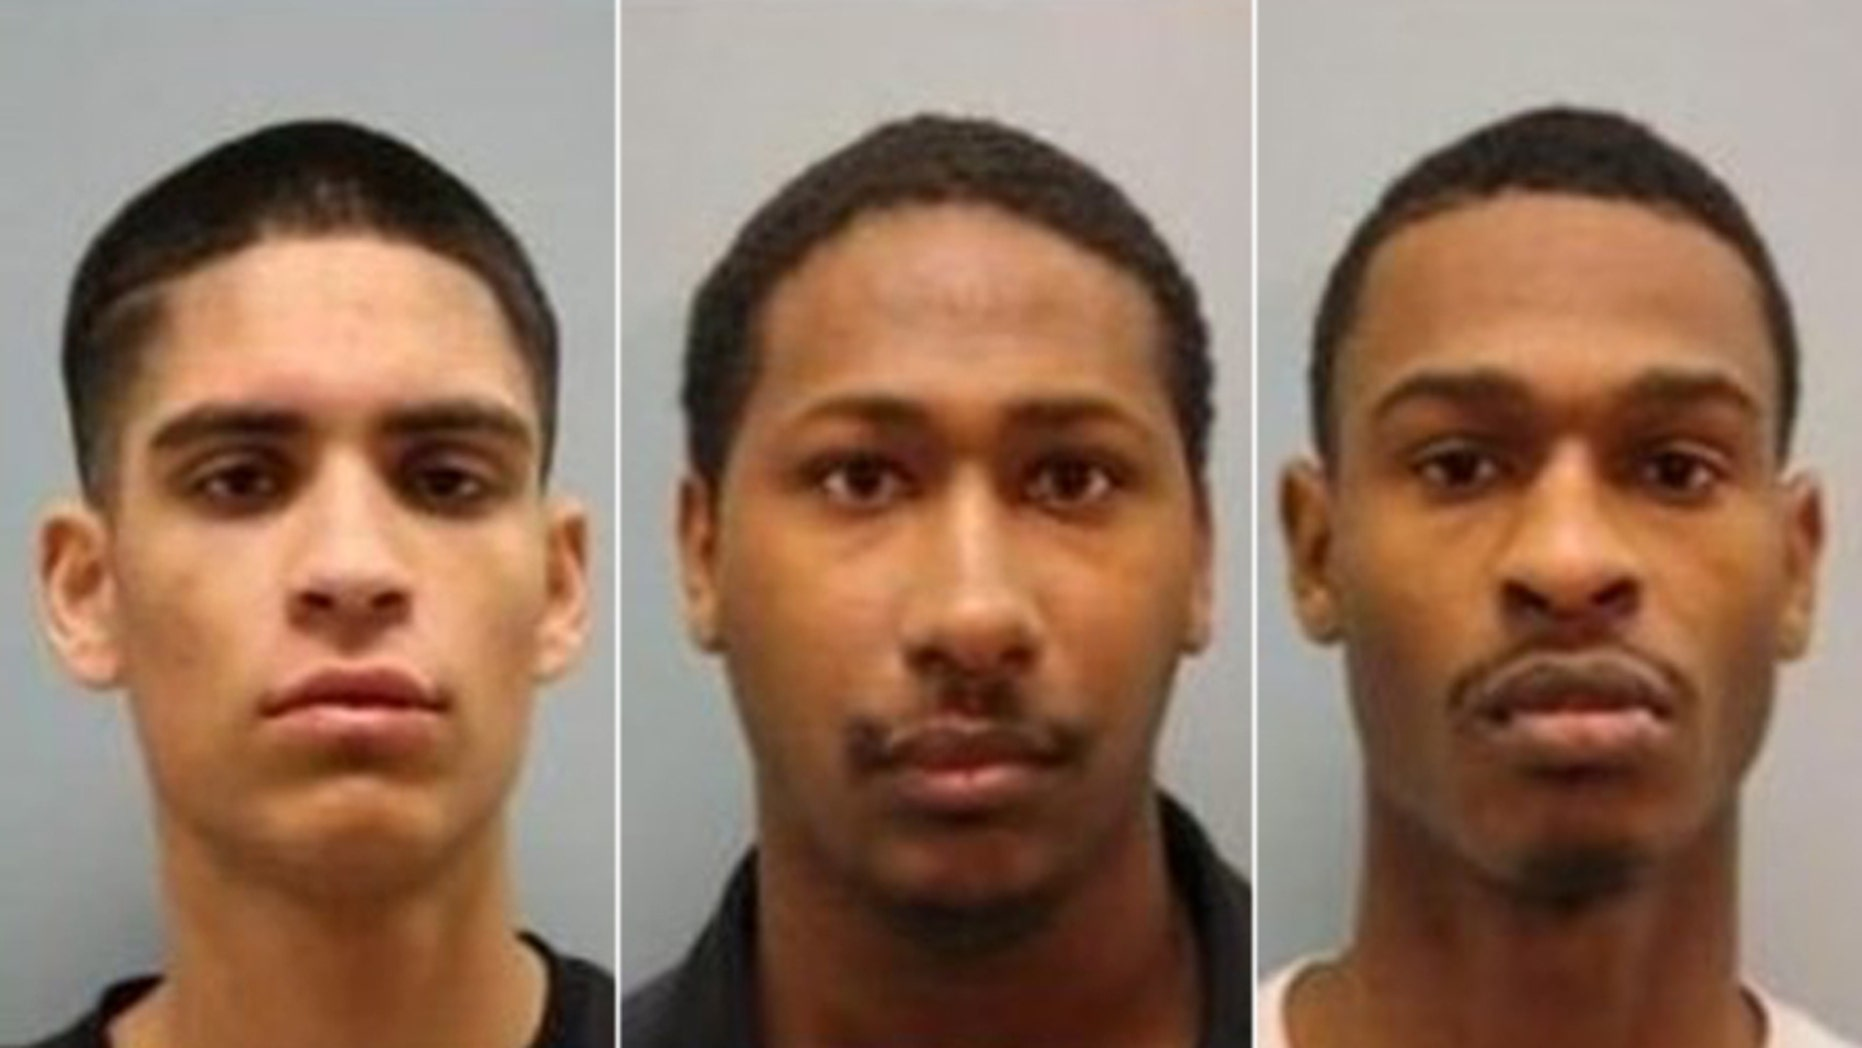 Pictured from left to right, Erick Peralta, Aakiel Kendrick, and Khari Kendrick, were arrested and charged with capital murder in the deaths of Bao and Jenny Lam.